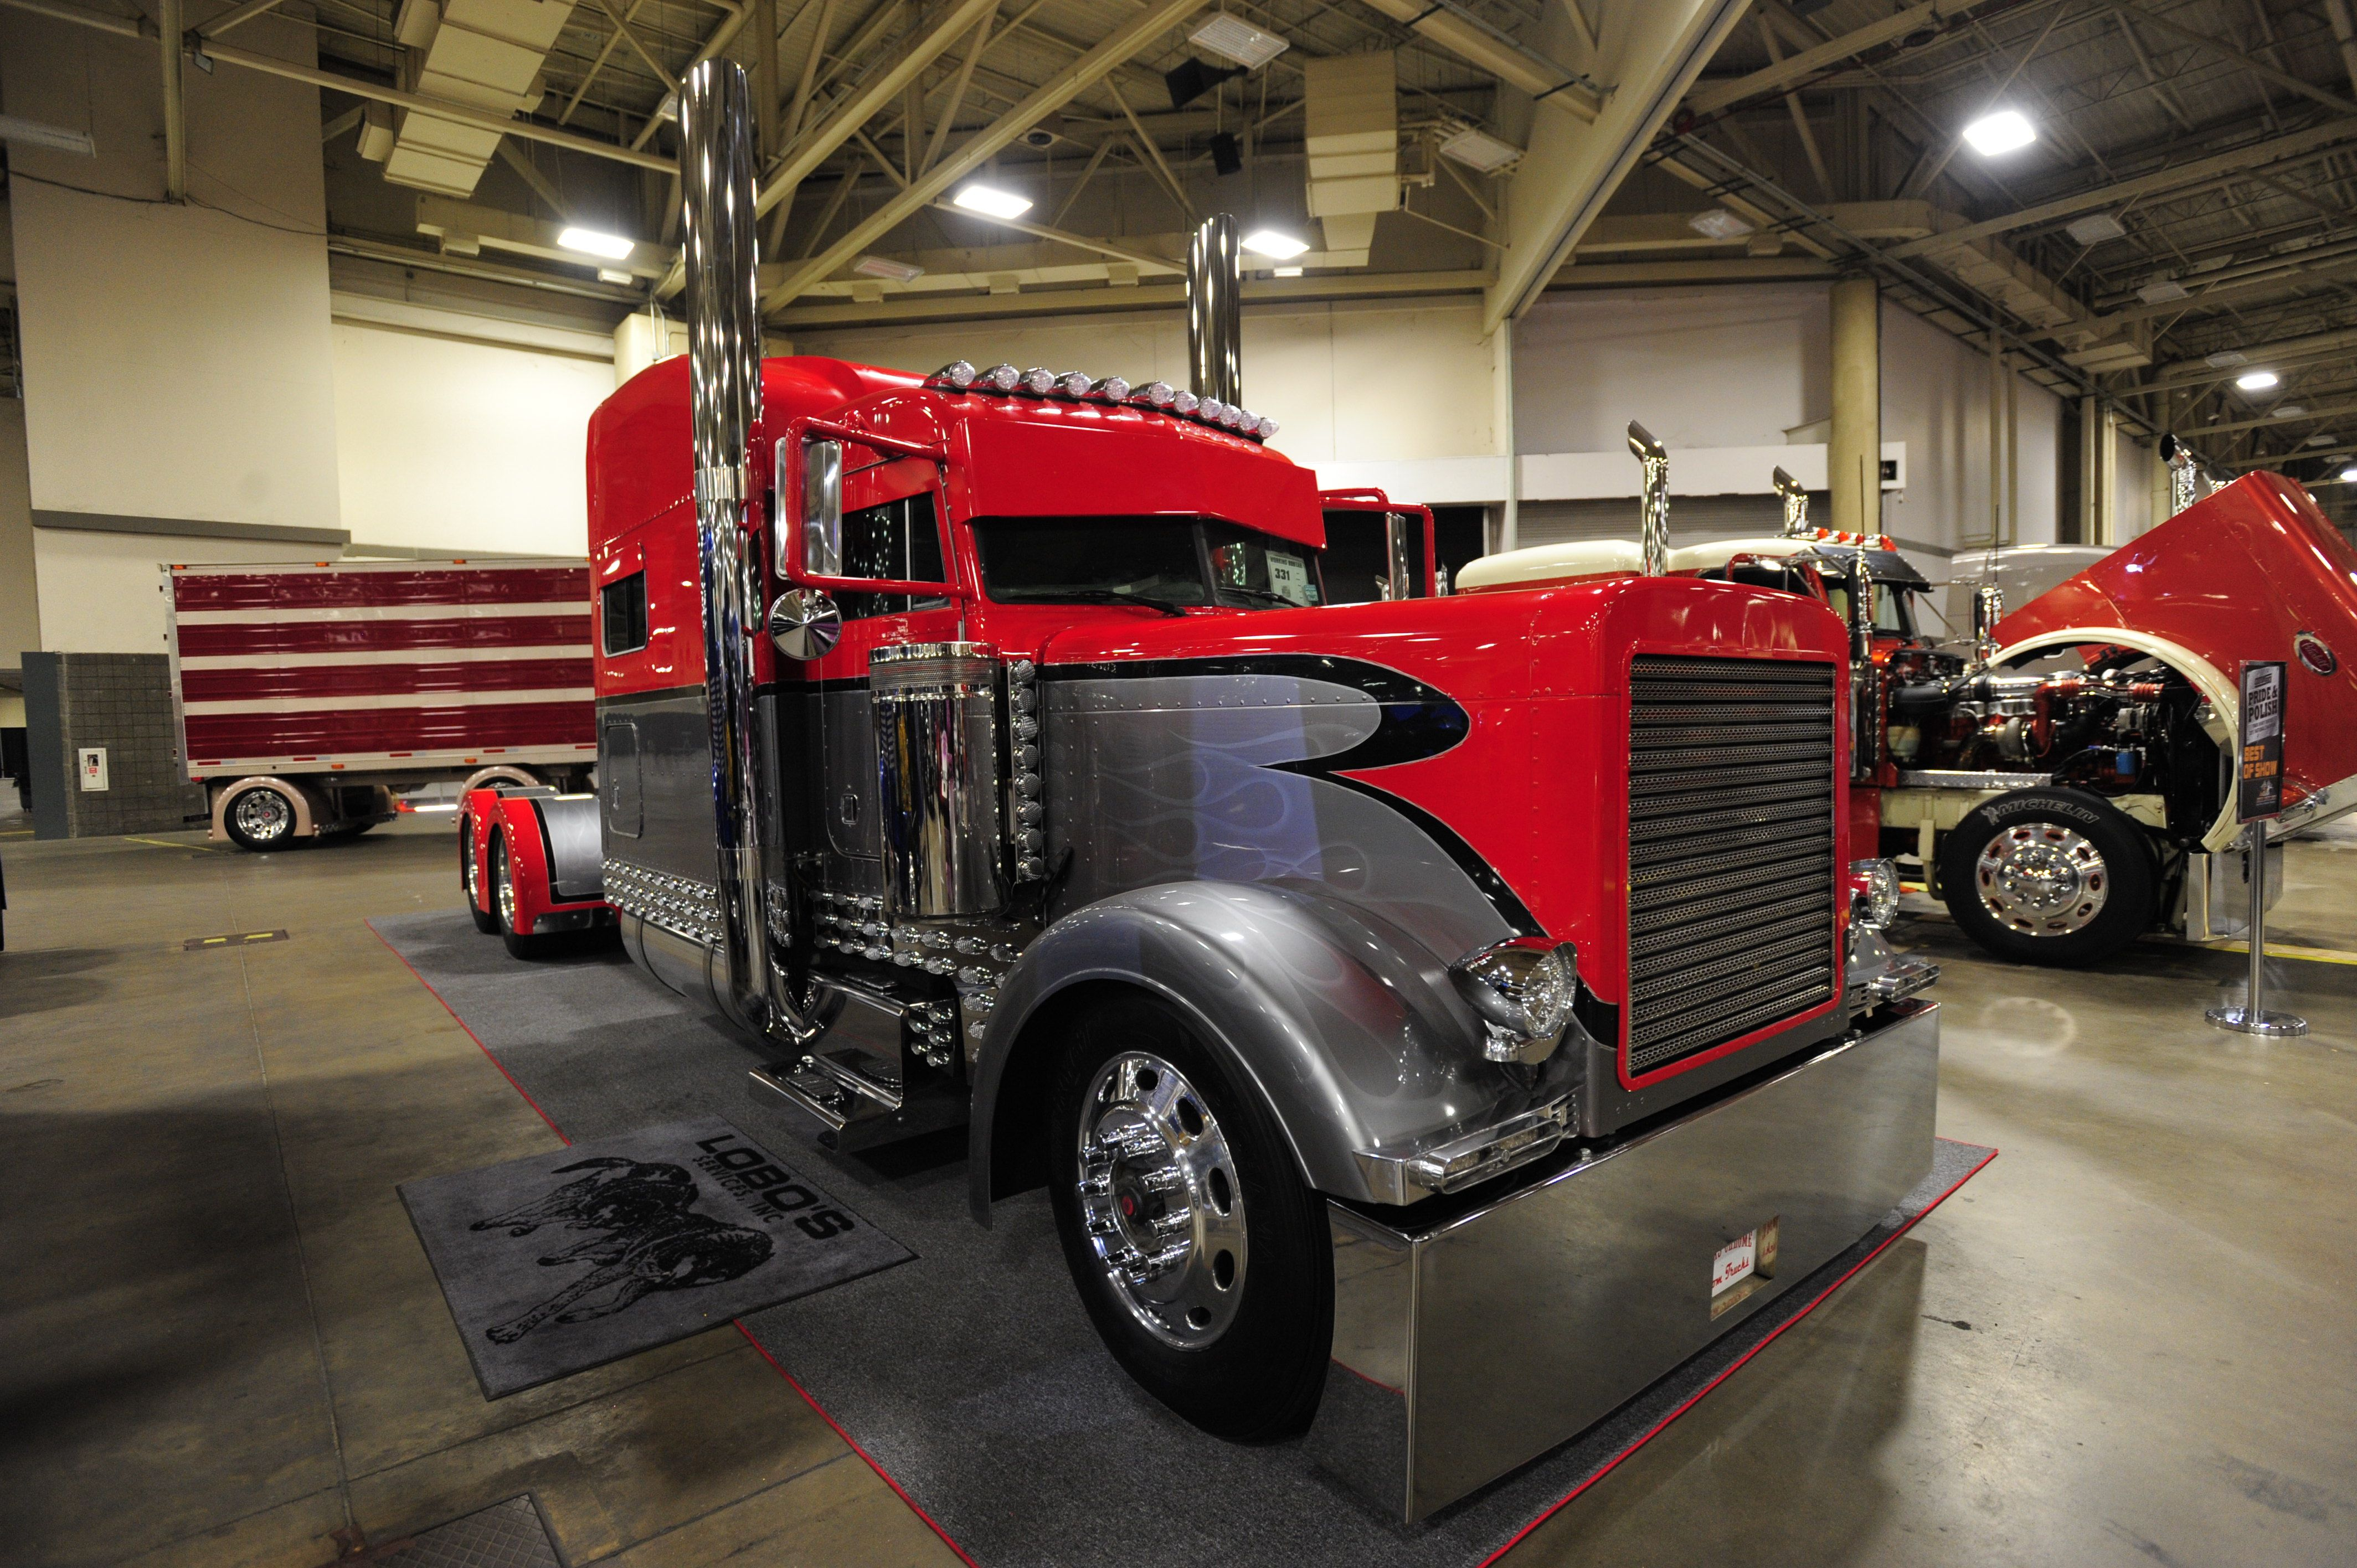 Lobo S Pride The San Antonio Based Texas Chrome Built This 03 Peterbilt 379 For Services In Midland Truck Has Bad Customs